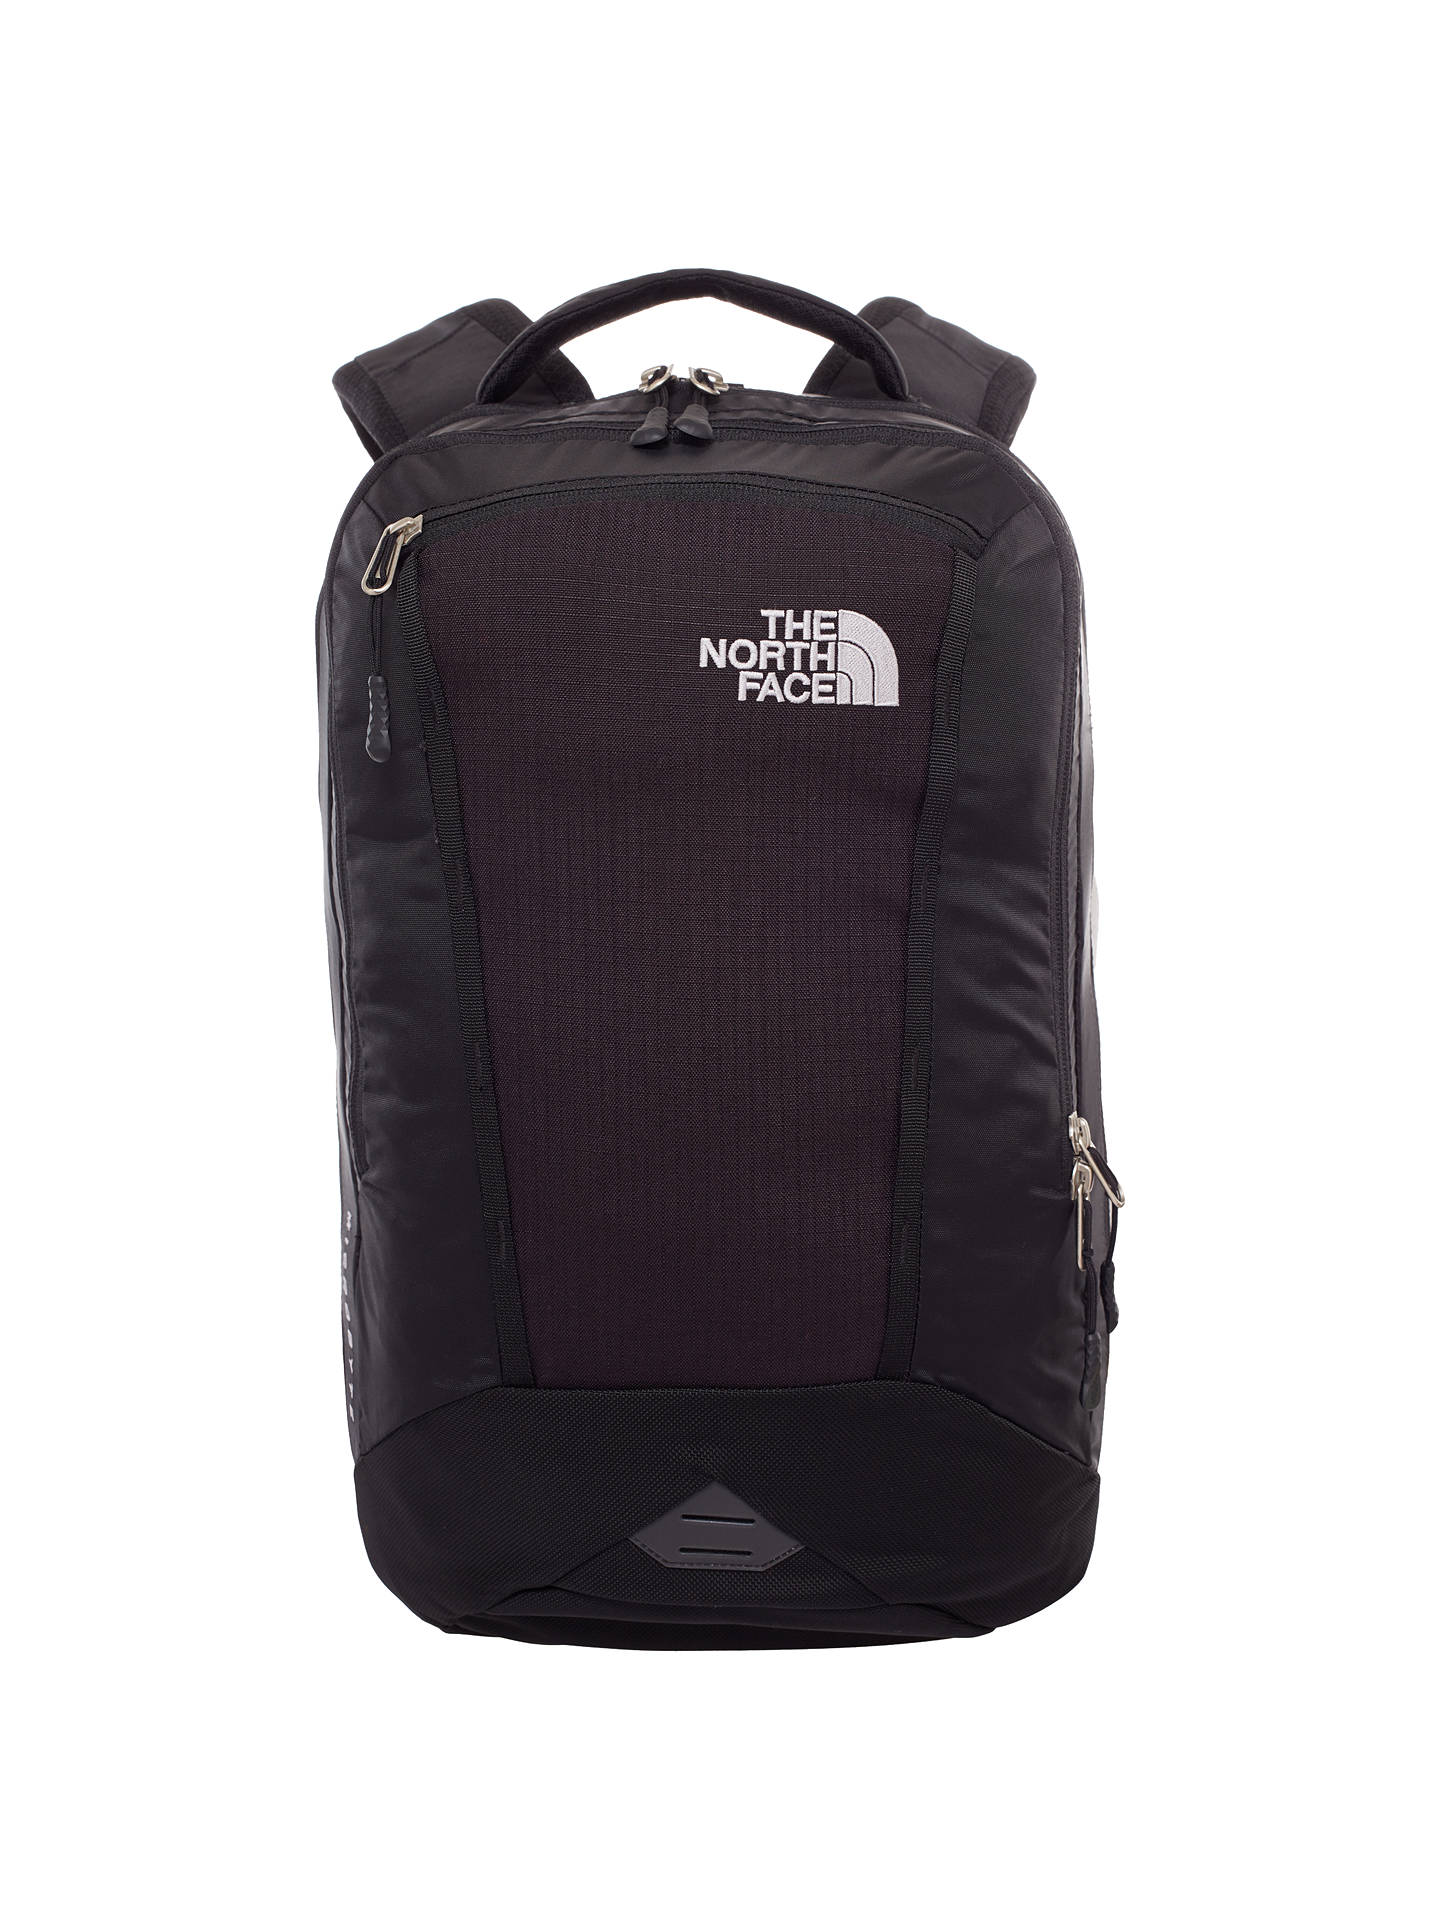 a77e1df36f Buy The North Face Microbyte Backpack, Black Online at johnlewis.com ...